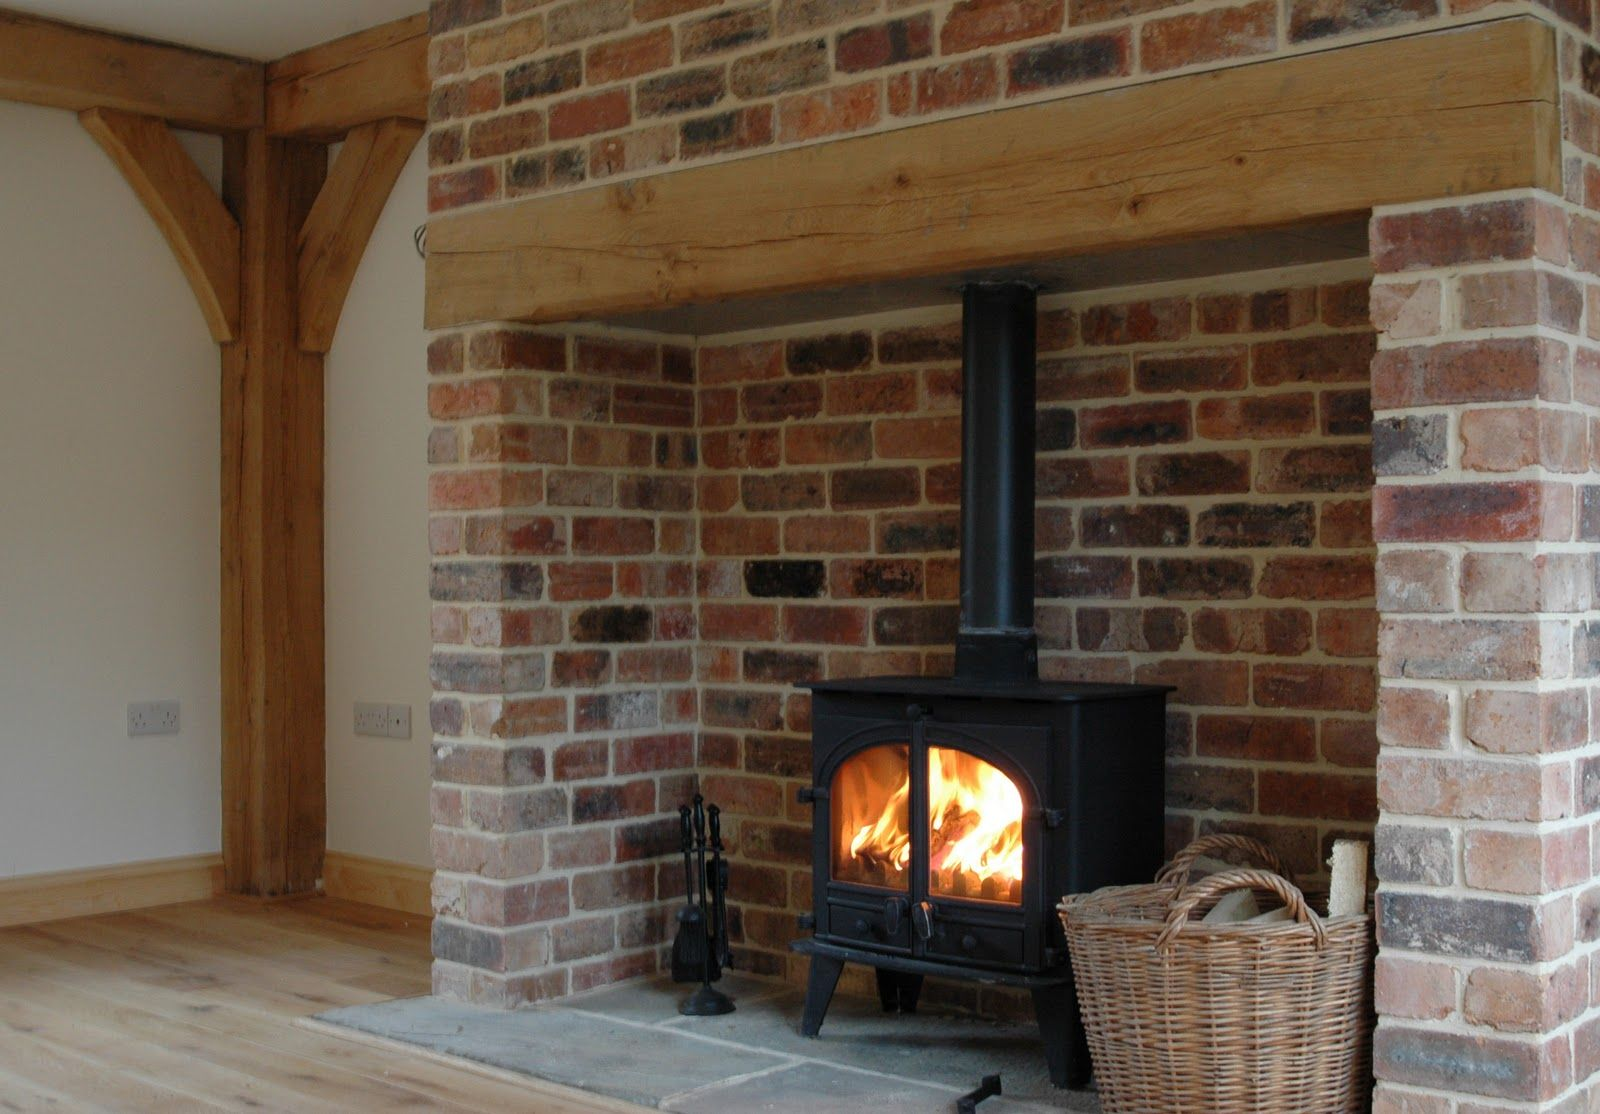 15 Must See Inglenook Fireplace Pins Wood Stoves Brick